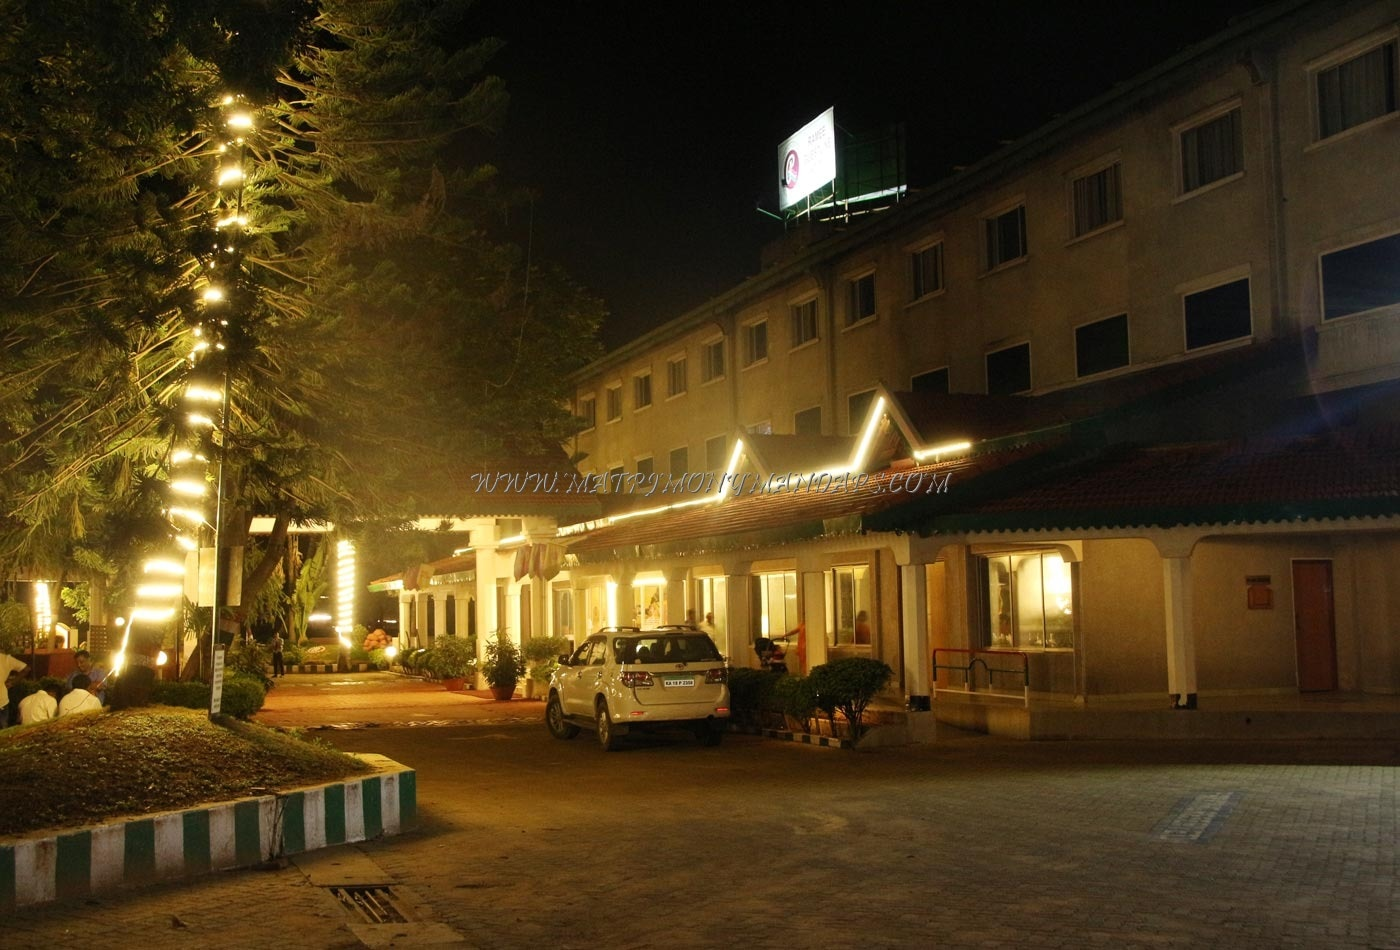 Find the availability of the Dialogue Ramee Guestline Hotels And Resorts (A/C) in Attibele, Bangalore and avail special offers